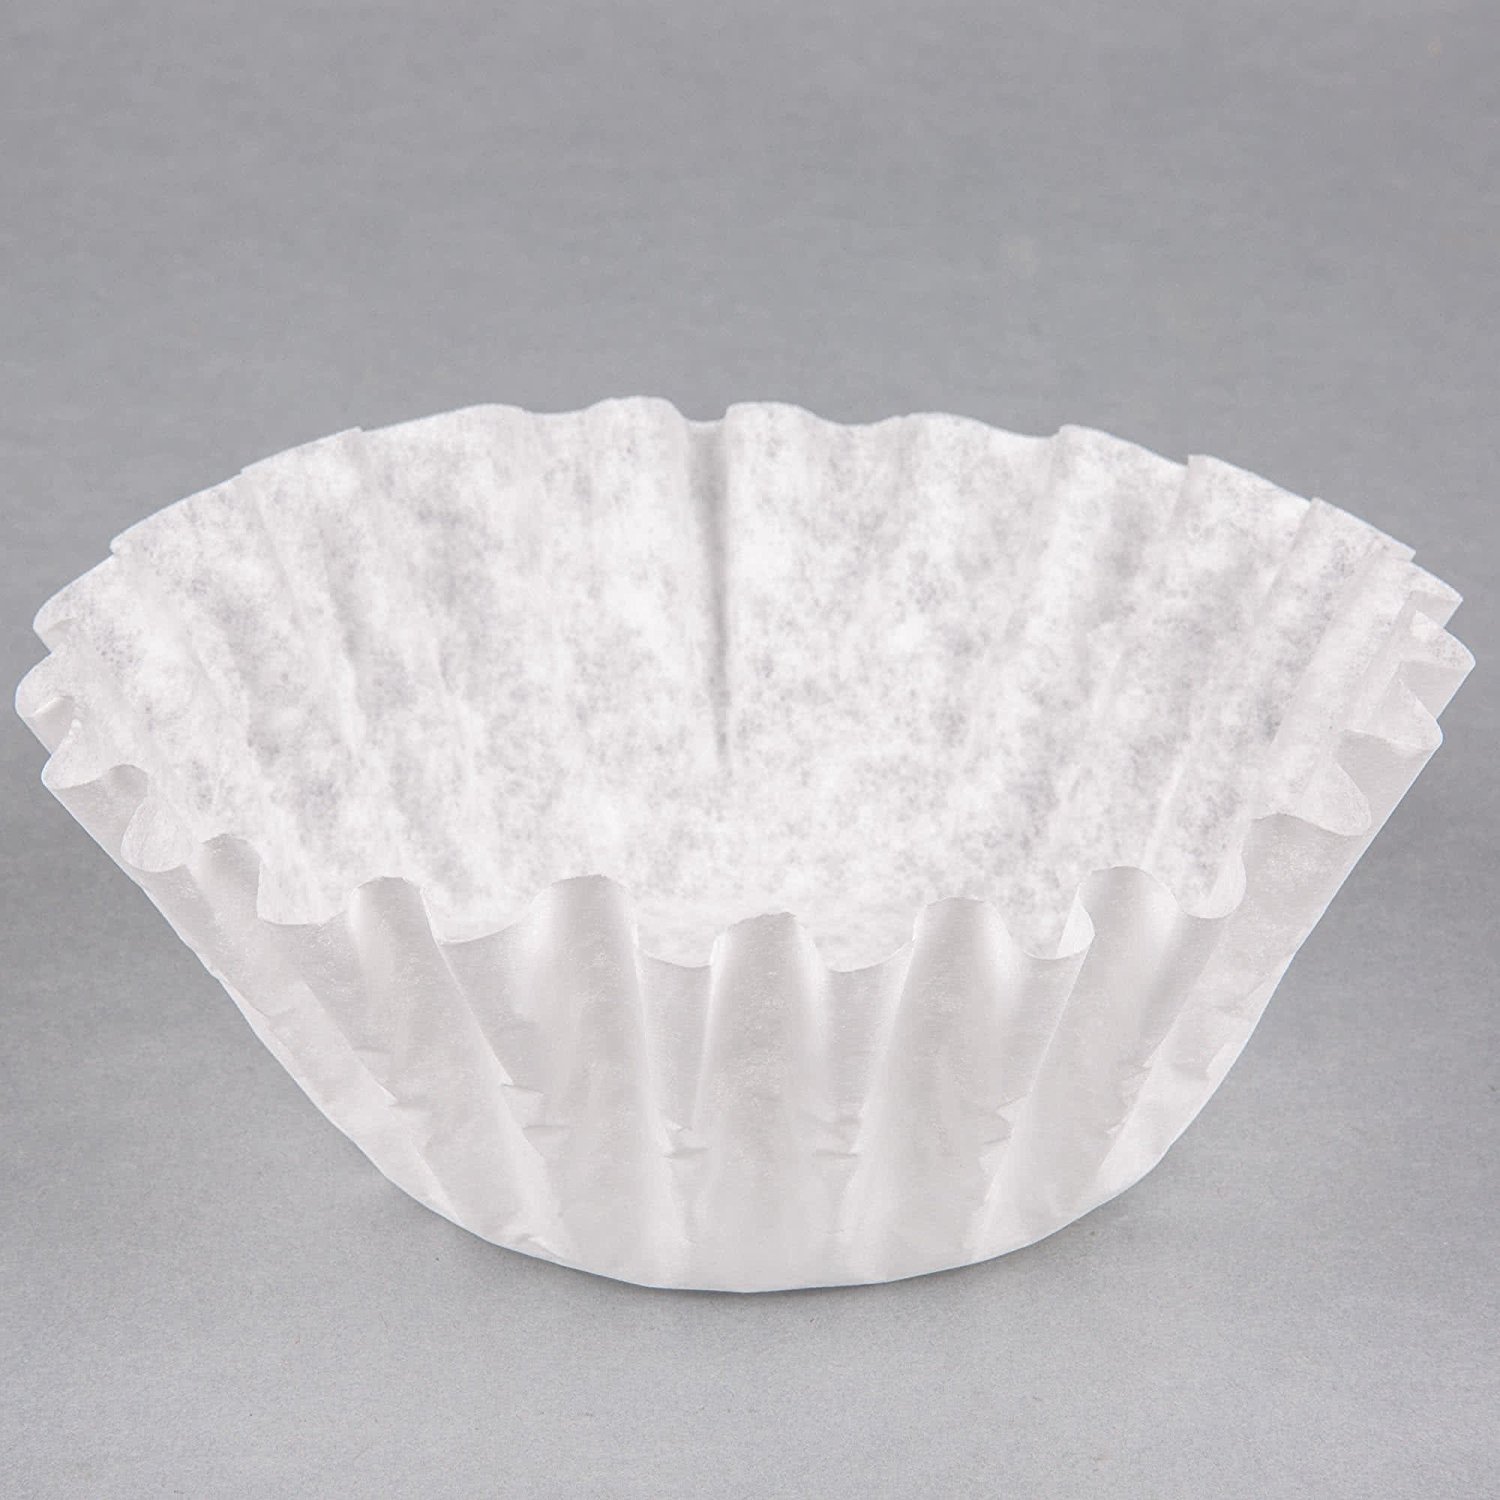 "9 3/4"" x 4 1/4"" 12 Cup Coffee Filter (TableTop King 20115.0000) - 1000/Case"